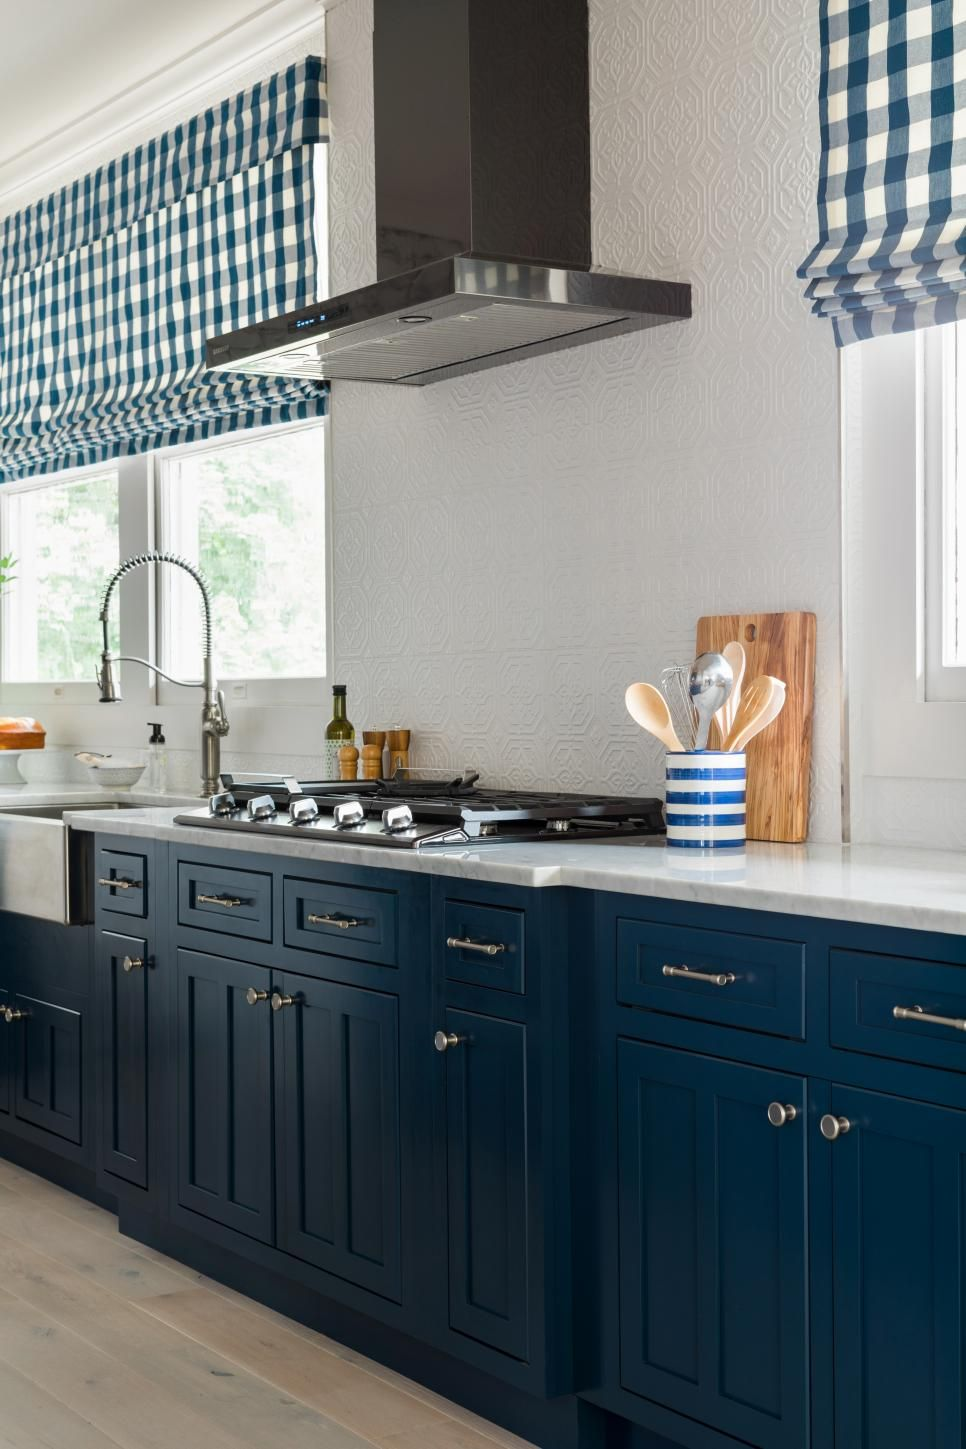 Kitchen pictures from hgtv urban oasis whitewashed brick